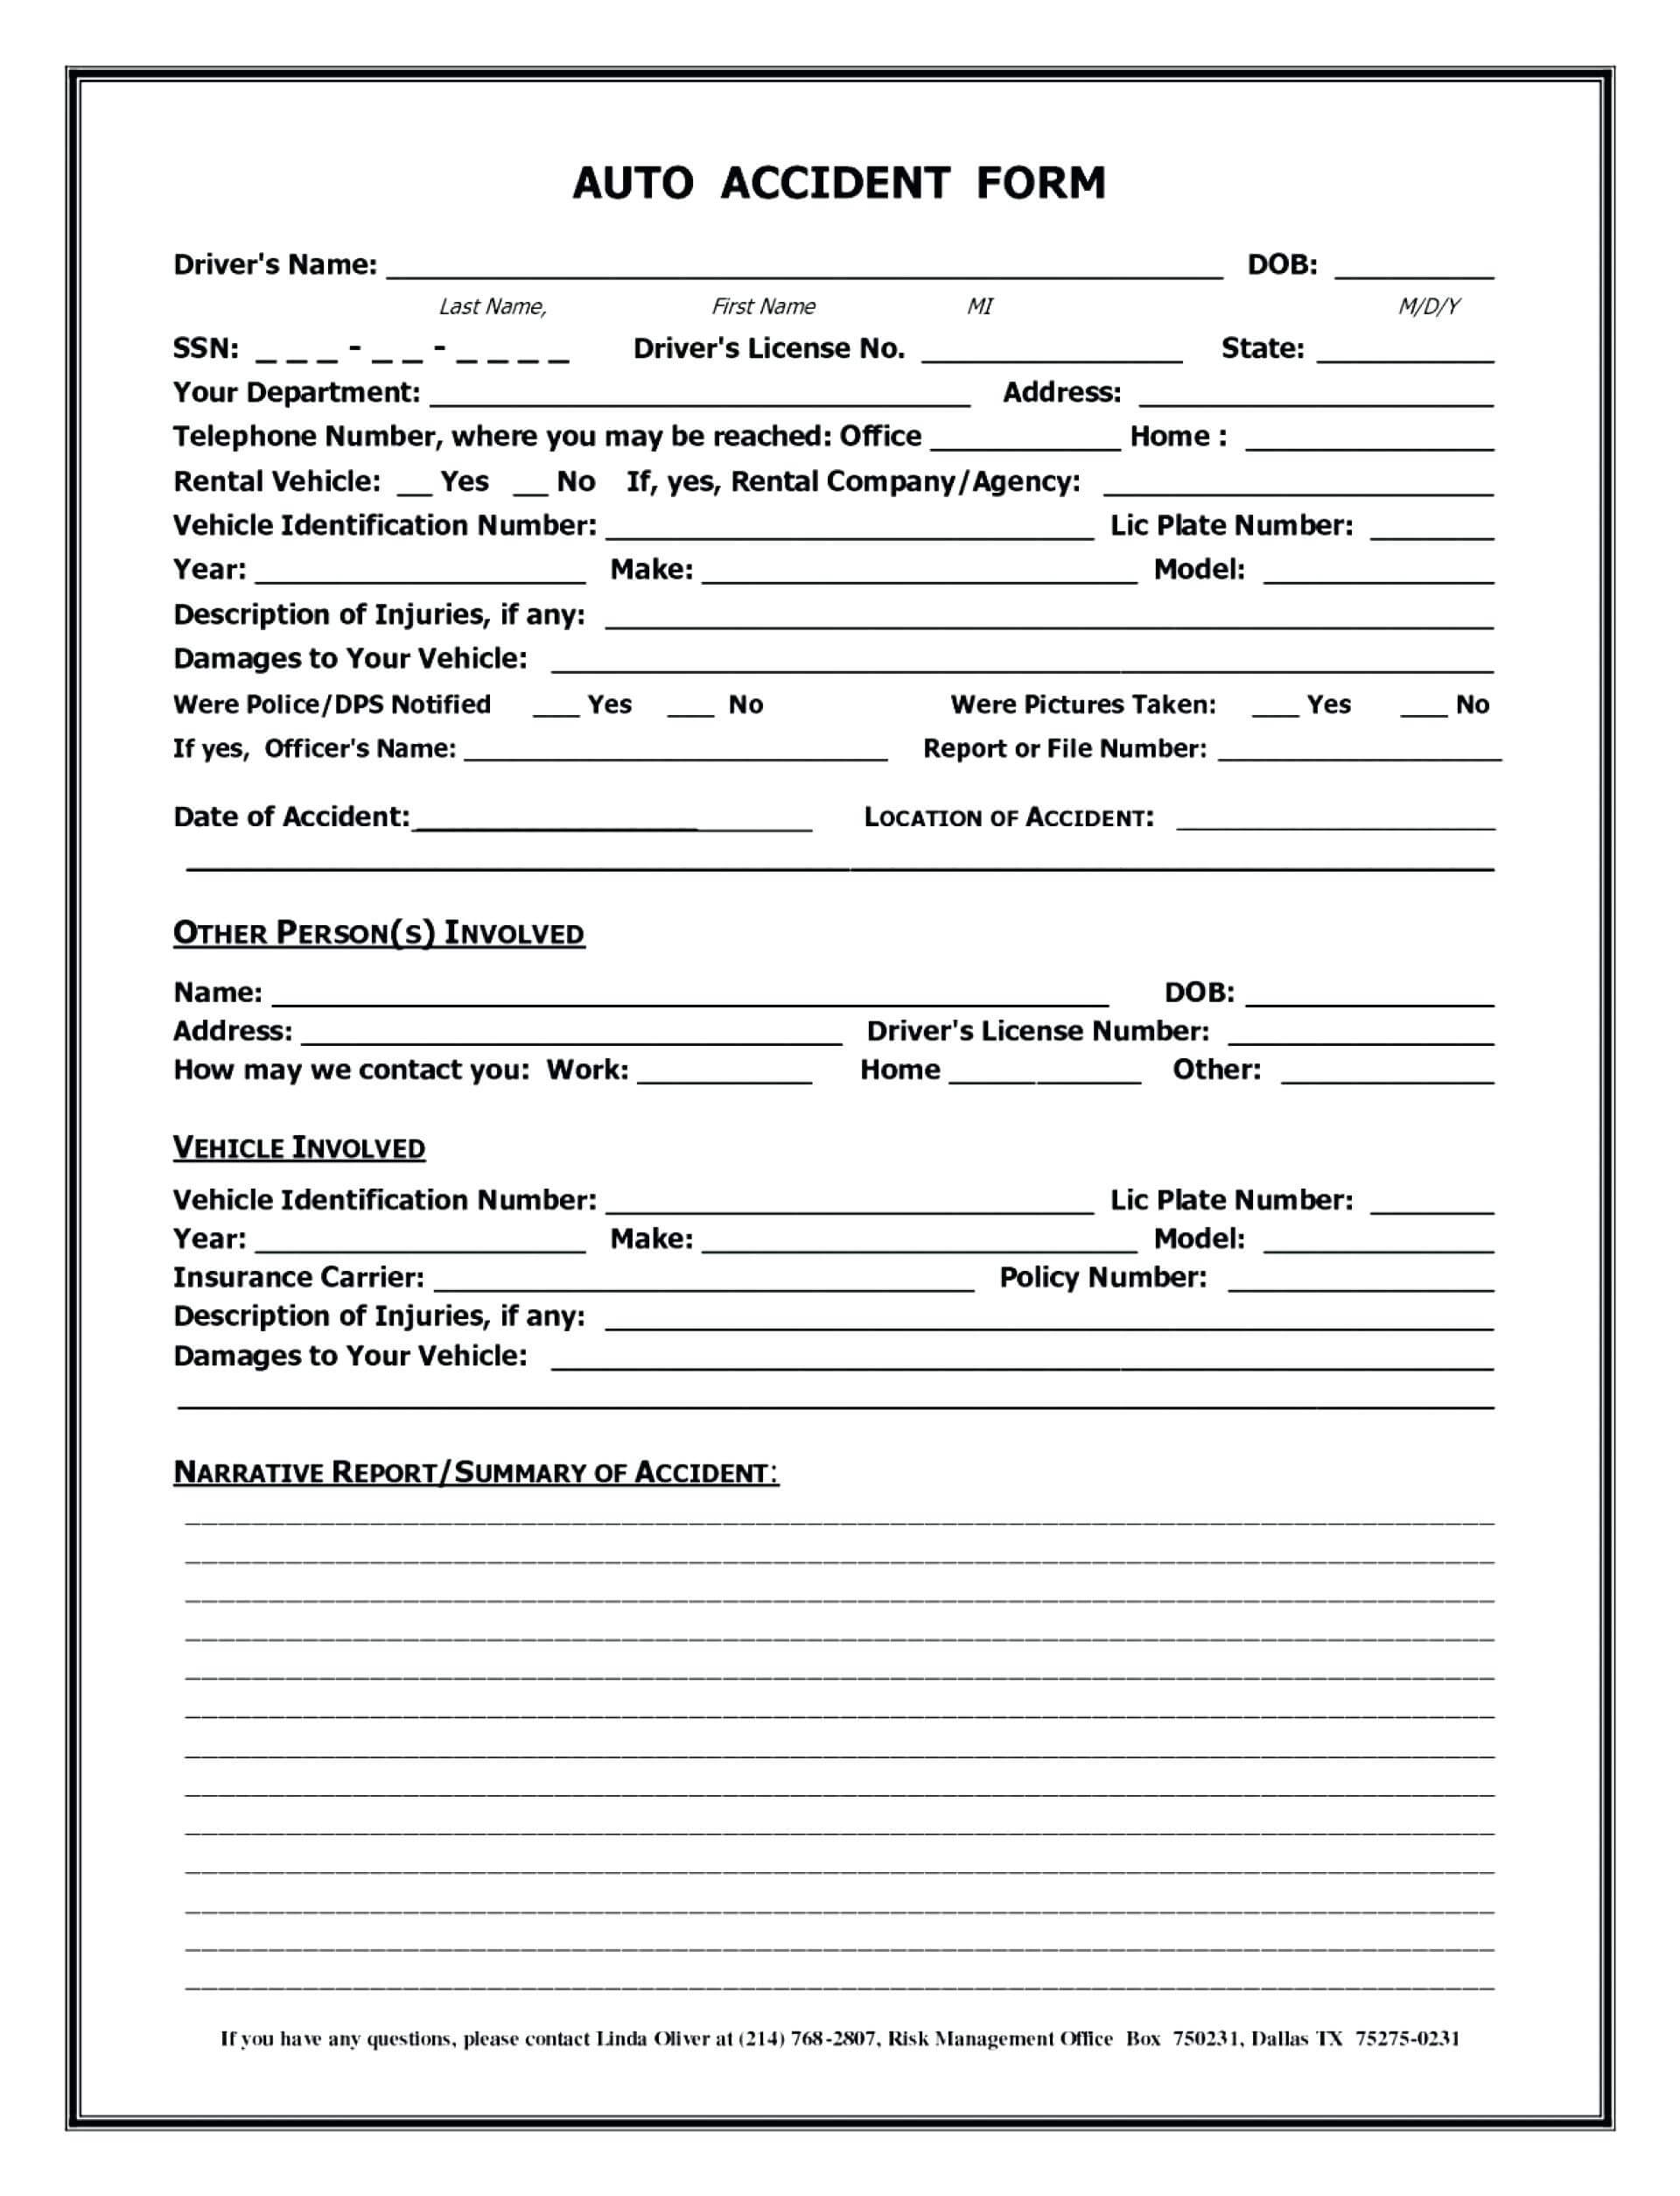 004 Traffic Accident Report Form Template Ideas Reporting Of Throughout Motor Vehicle Accident Report Form Template